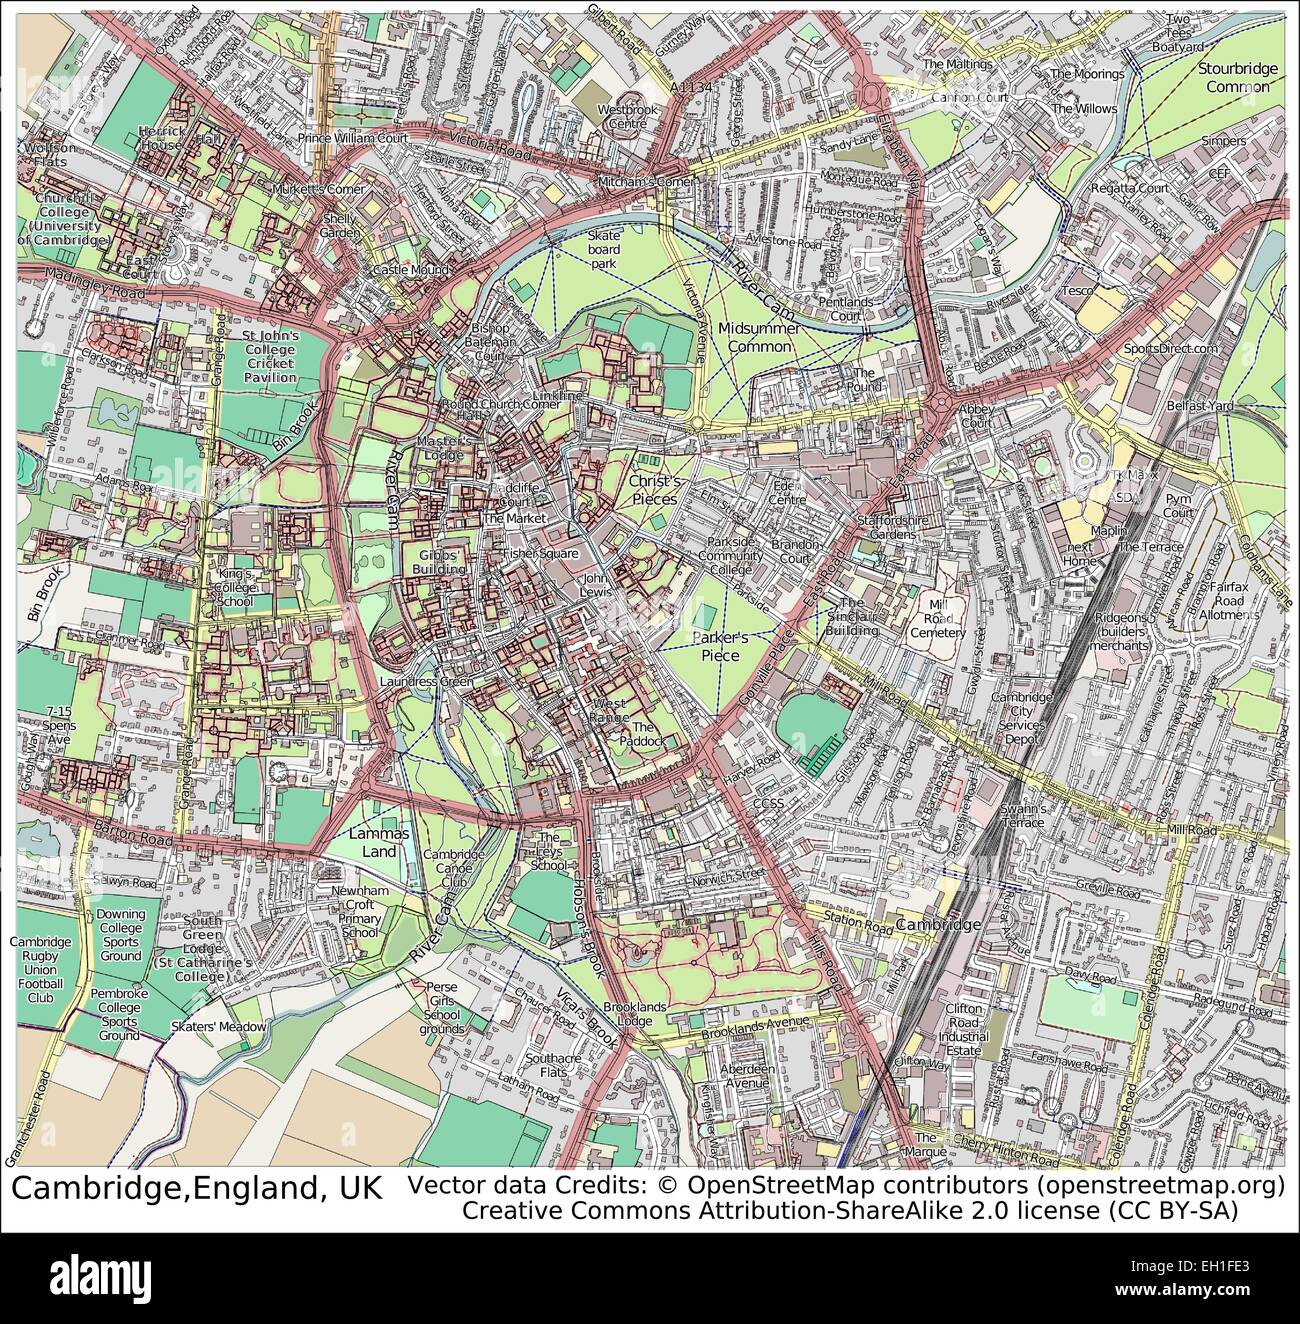 Cambridge England UK city map Stock Vector Art Illustration